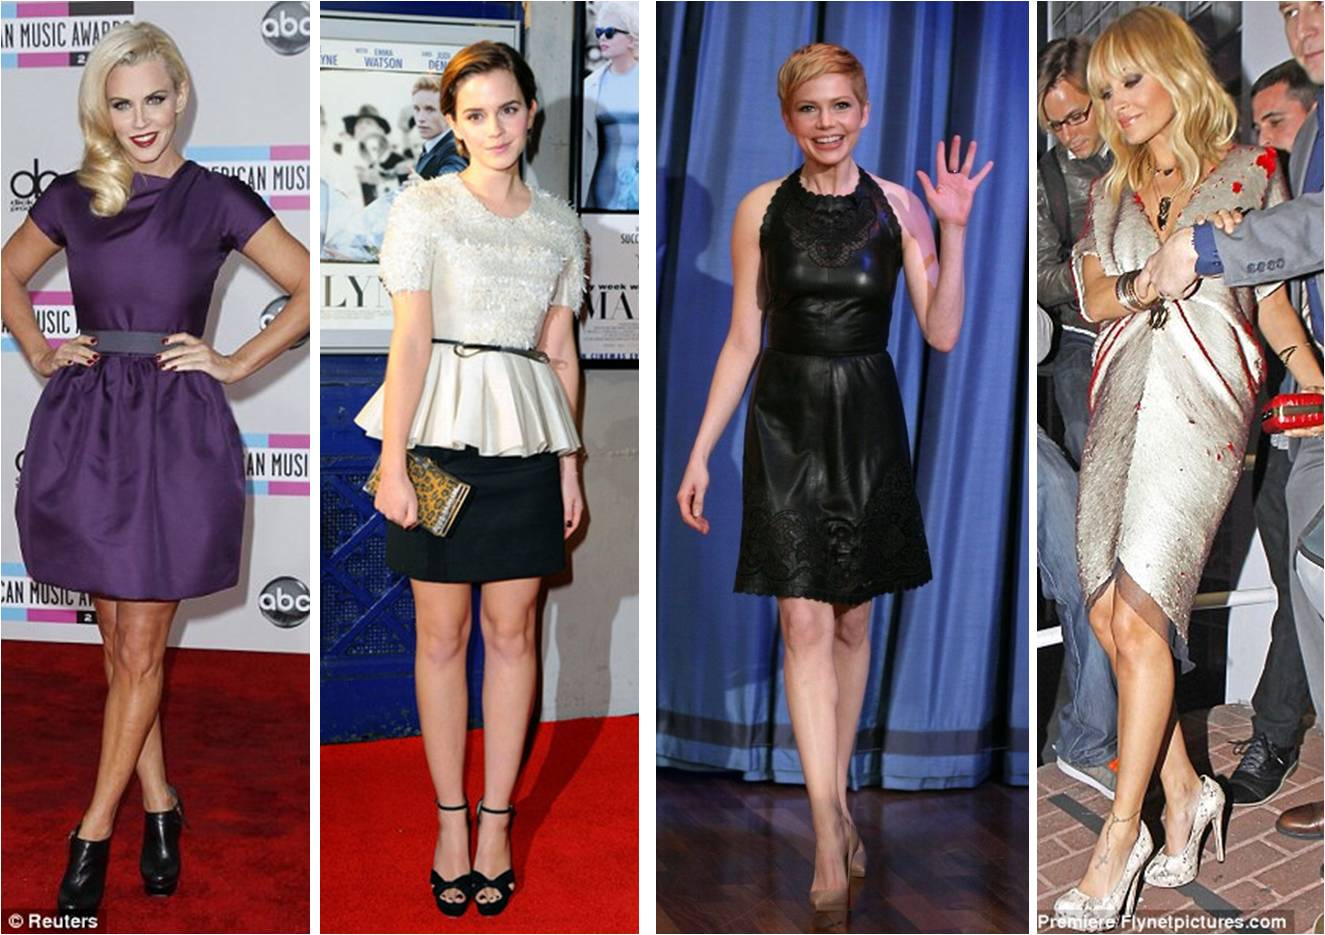 http://2.bp.blogspot.com/-W0vj7PIsOTw/Tss-VZ5kA5I/AAAAAAAAH8I/au9Akn0Sxuc/s1600/Looks+I+Loved+This+Weekend+Jenny+McCarthy+Emma+Watson+Michelle+Williams+Nicole+Richie.jpg